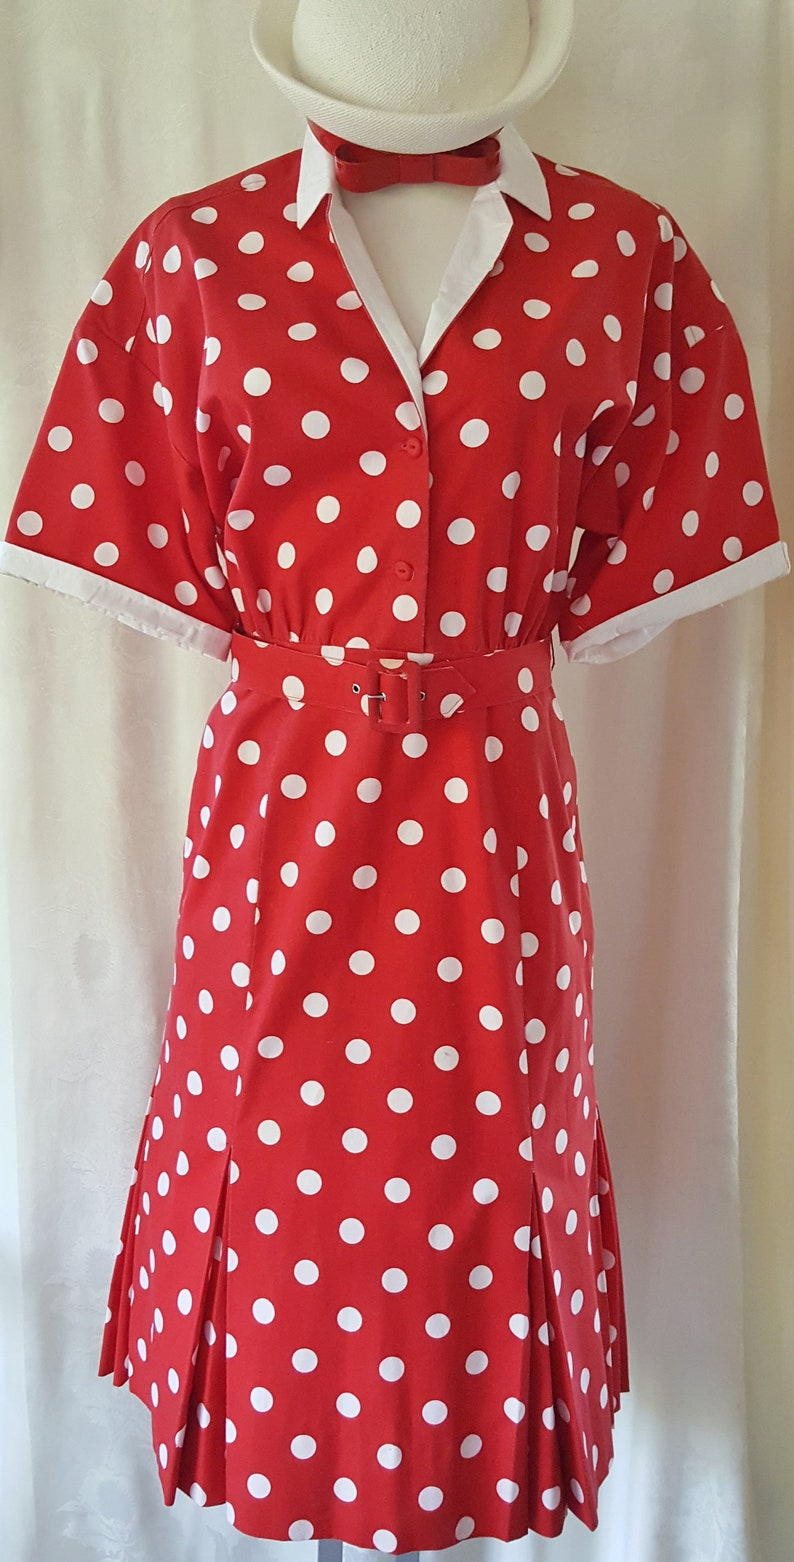 Vintage 50s Dresses: Best 1950s Dress Styles HAPPY Polka Dot Dress 1960s SophisticatedLaRue $72.00 AT vintagedancer.com